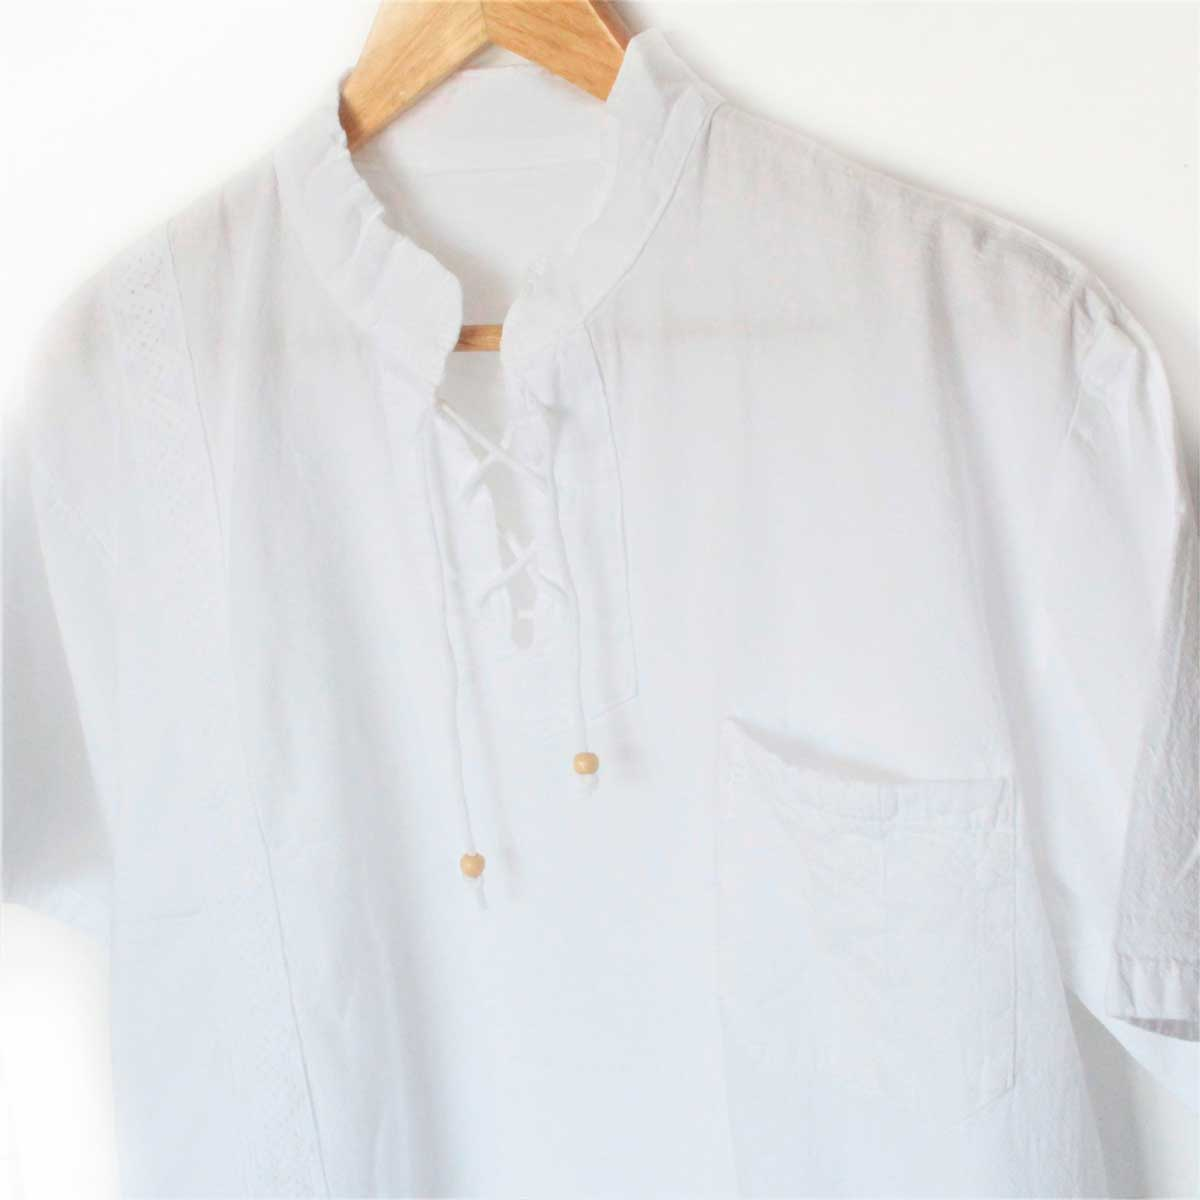 Inka-Products-Chemise Col Mao Homme-Coton Péruvien-2